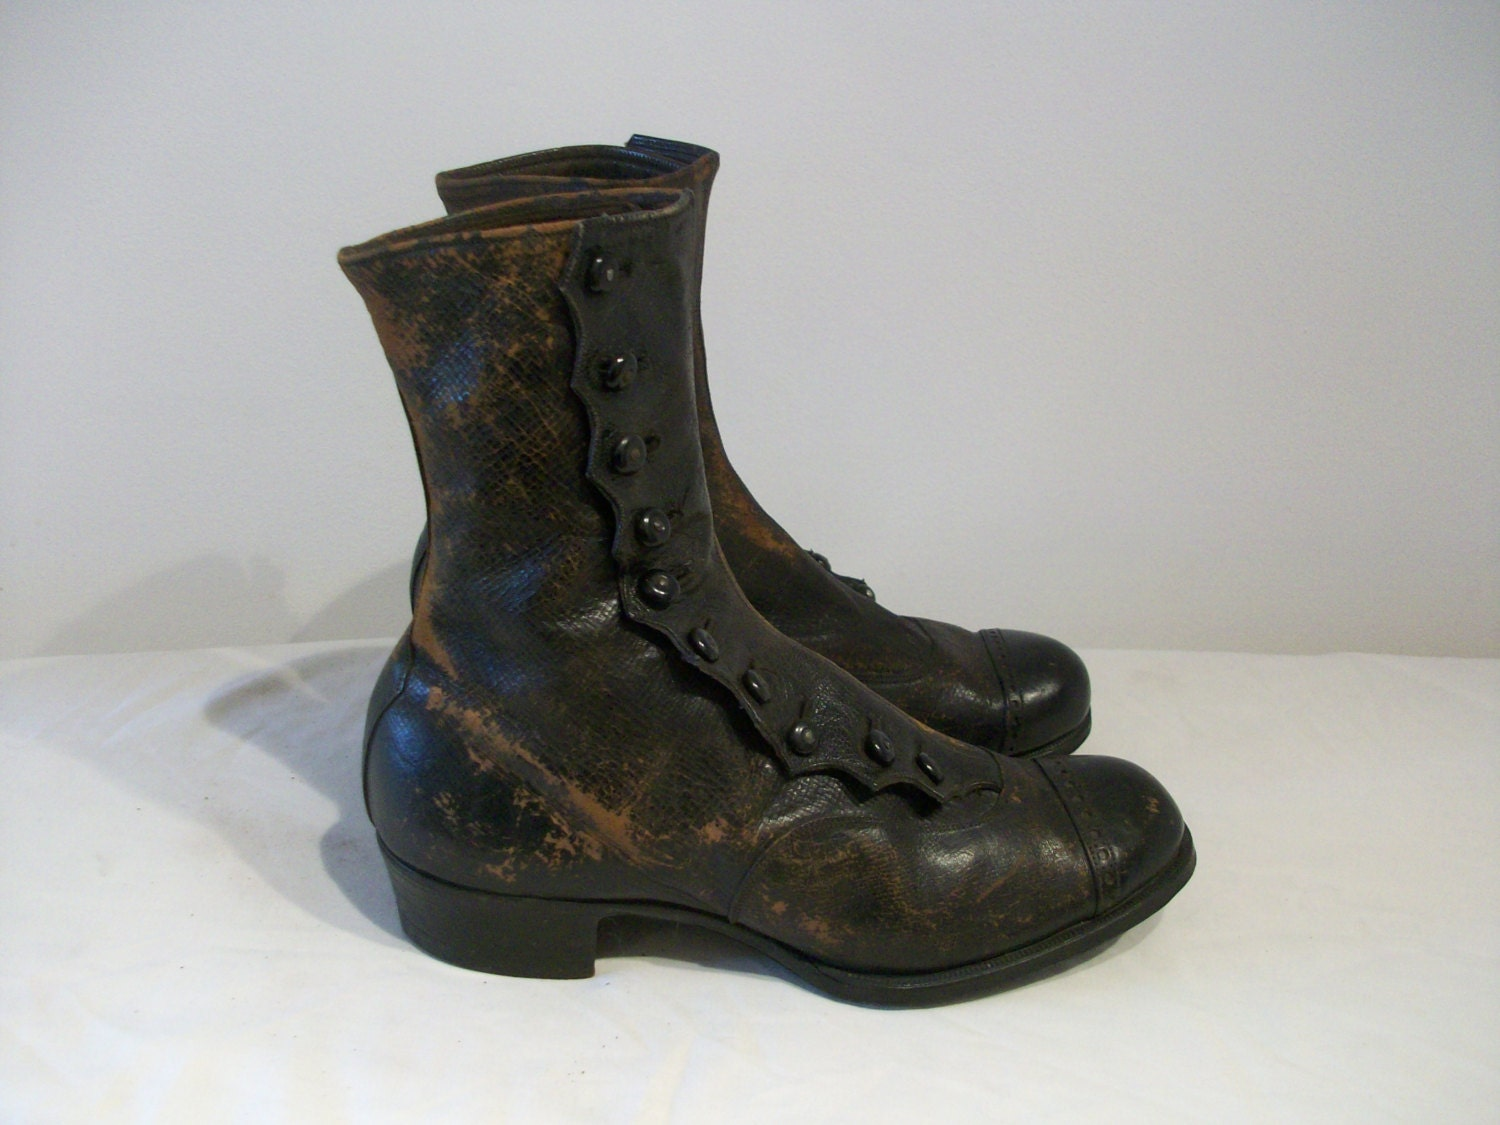 Characterful Victorian  Edwardian button boots US 5 12  UK 3 12 great look